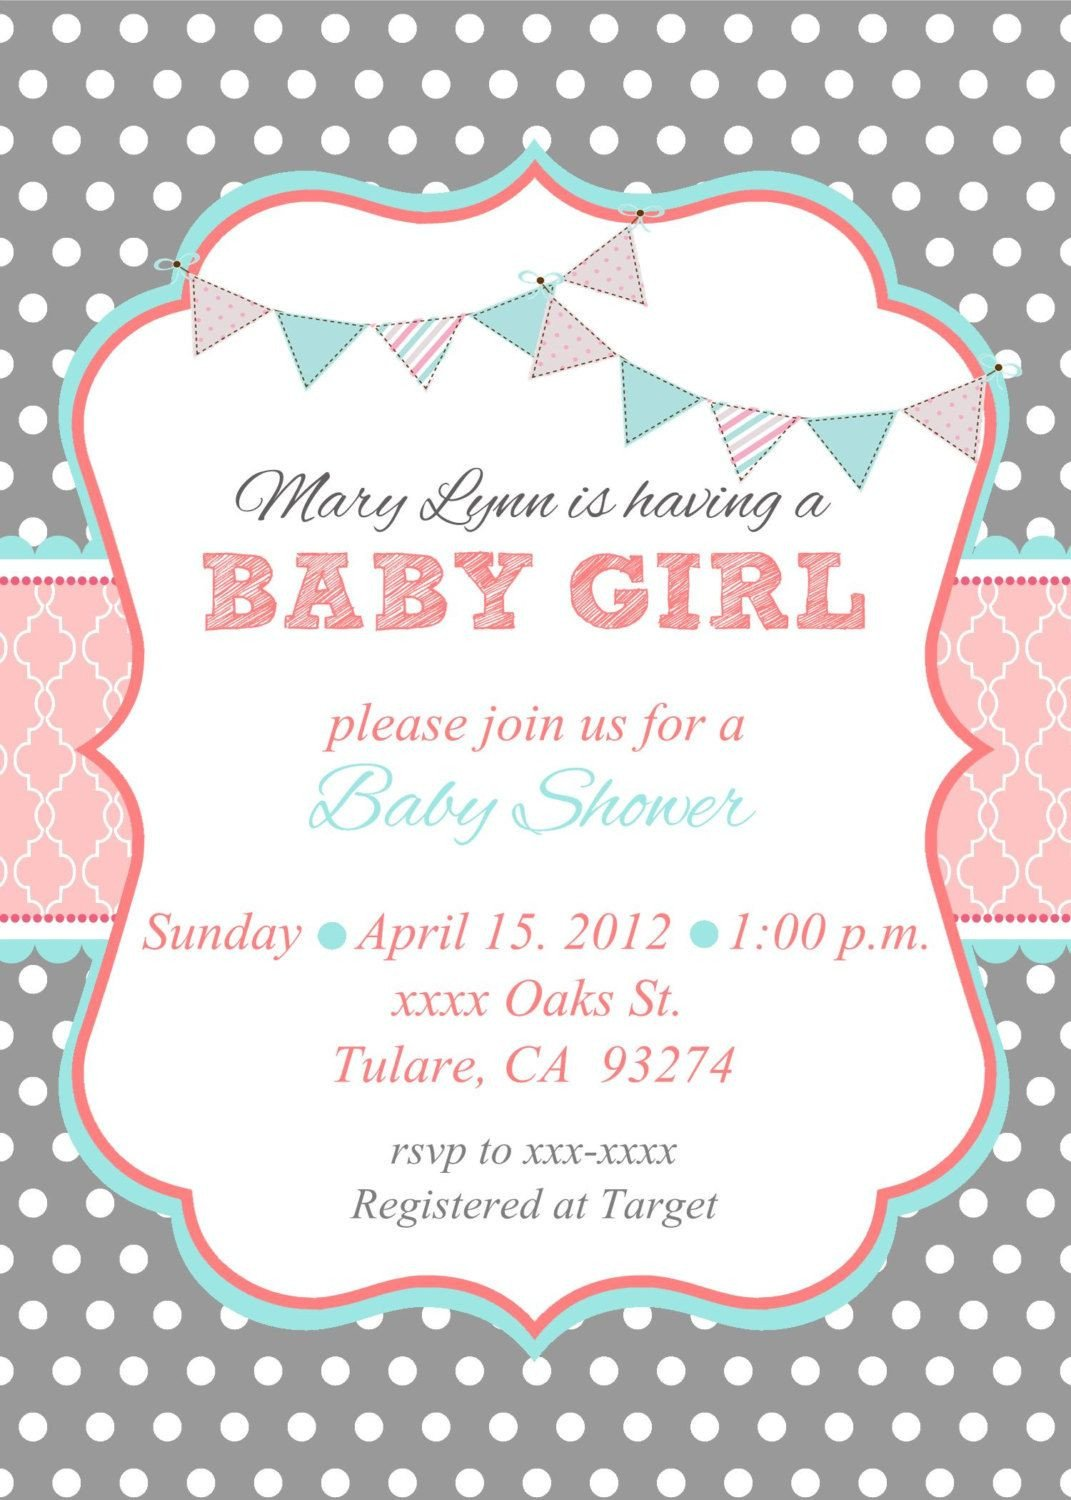 Loca Date Time Line about diaper raffle & spa prize